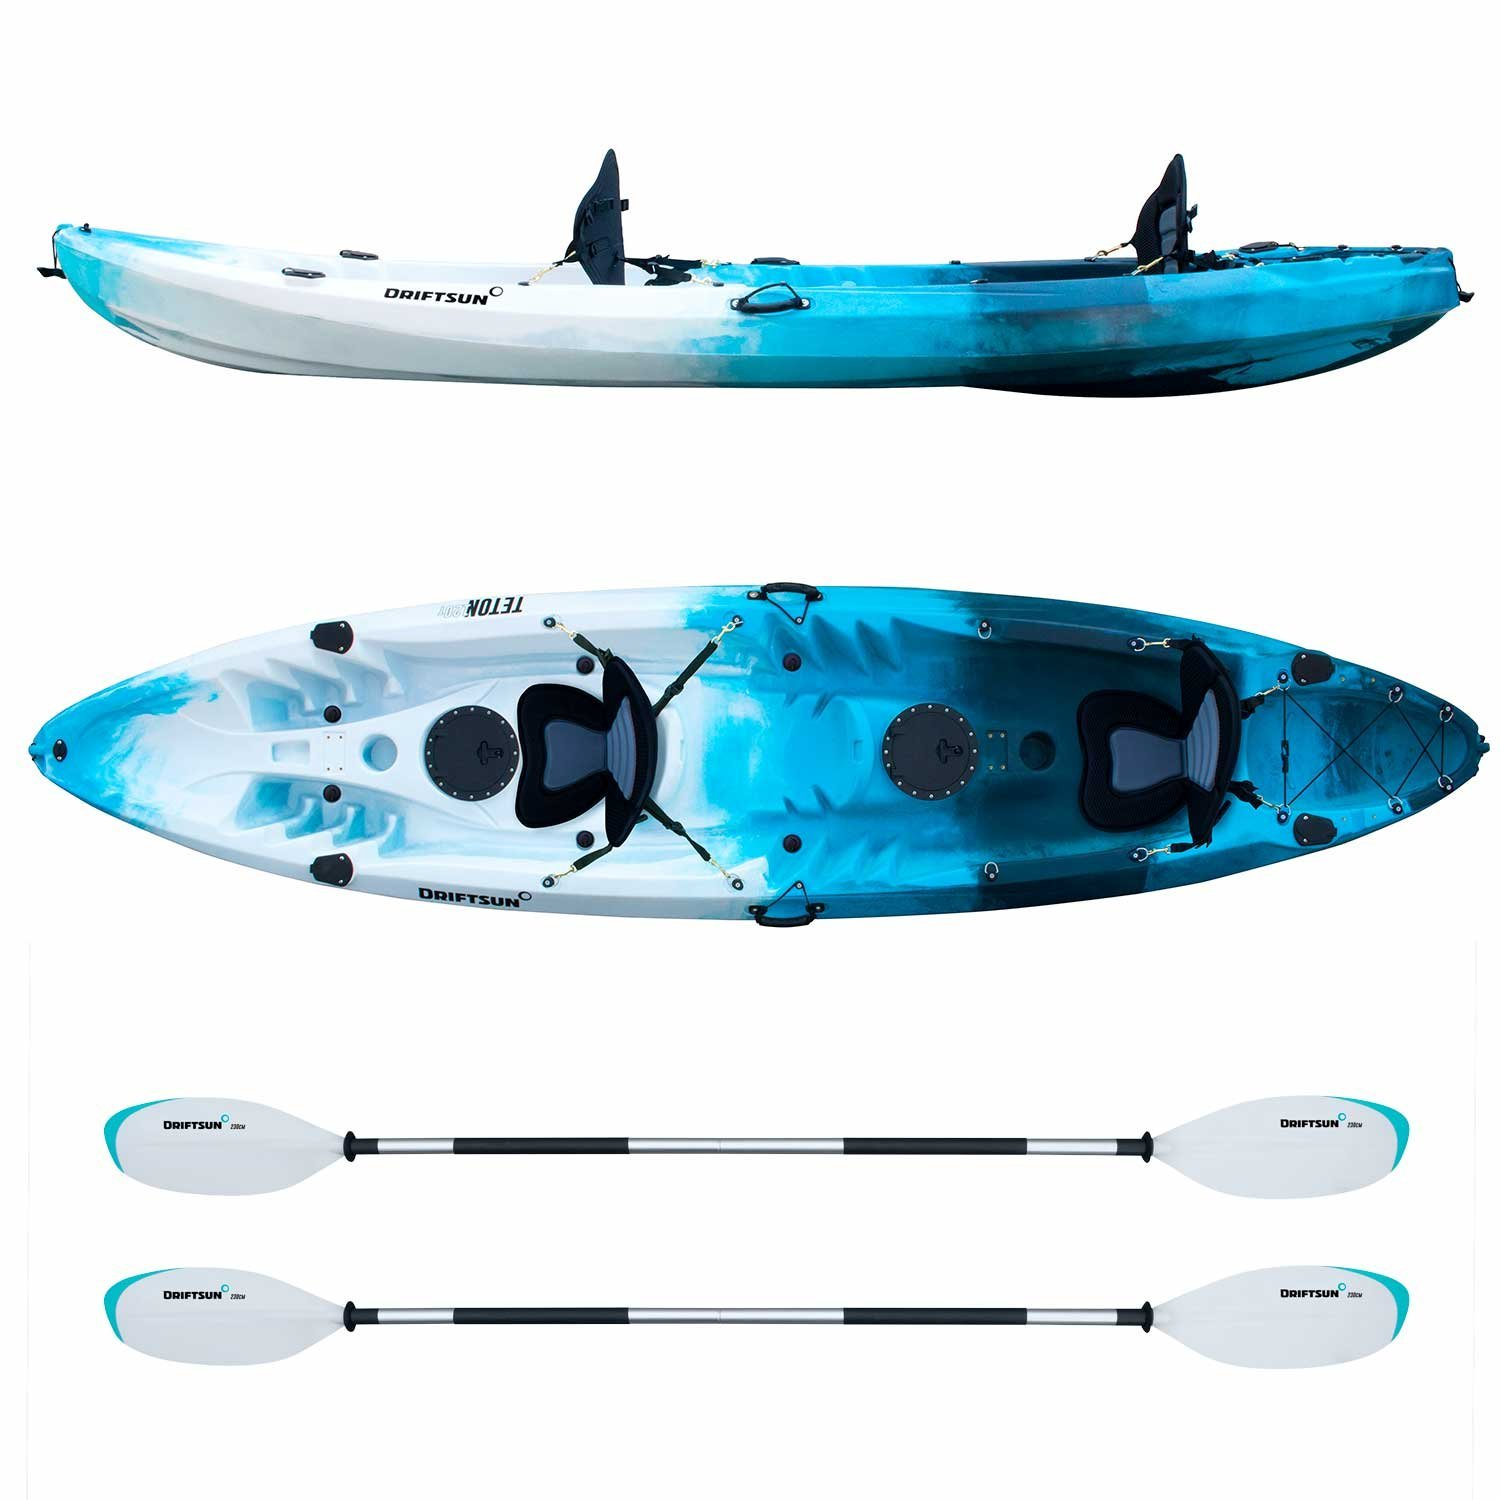 Driftsun Teton 120 Hard Shell Recreational Kayak – Tandem 2 or 3 Person Sit On Top Kayak Package with 2 EVA Seats, 2 Paddles, Fishing Rod Holders and More